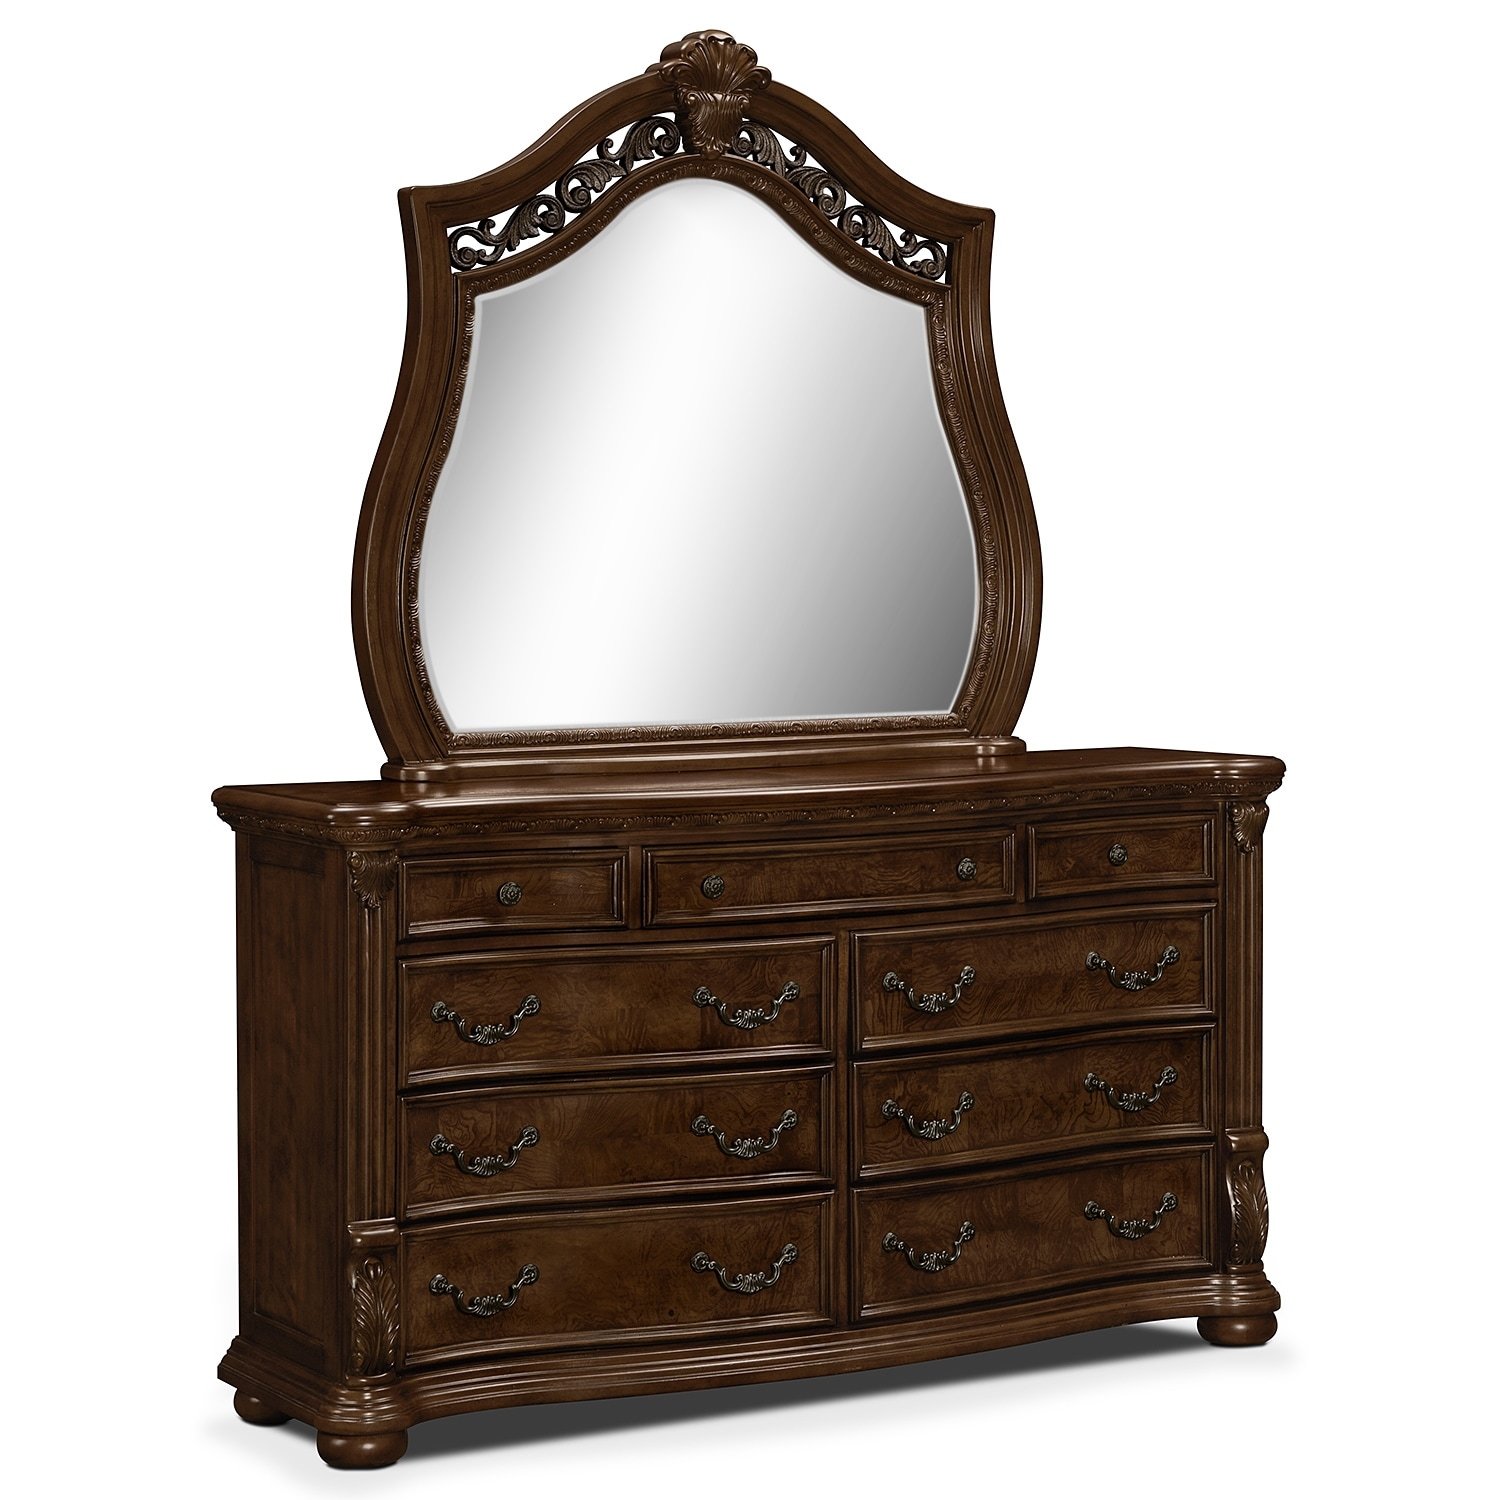 morocco dresser mirror value city furniture